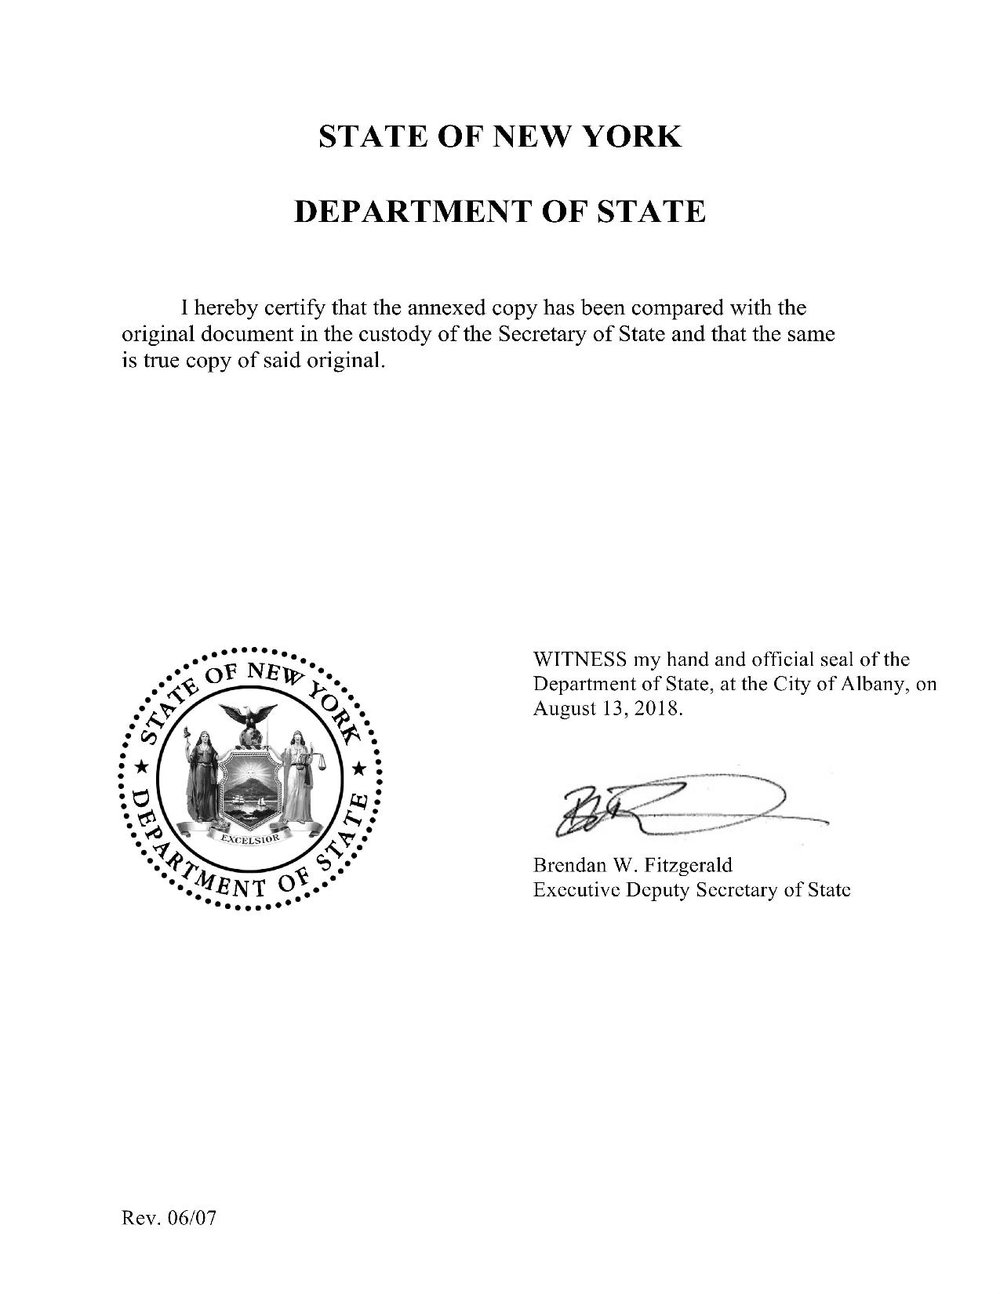 Scan of formal document from the State of New York Department of State. White paper with black text including the state seal of New York and a formal signature form the Executive Deputy Secretary of State Brendan W. Fitzgerald